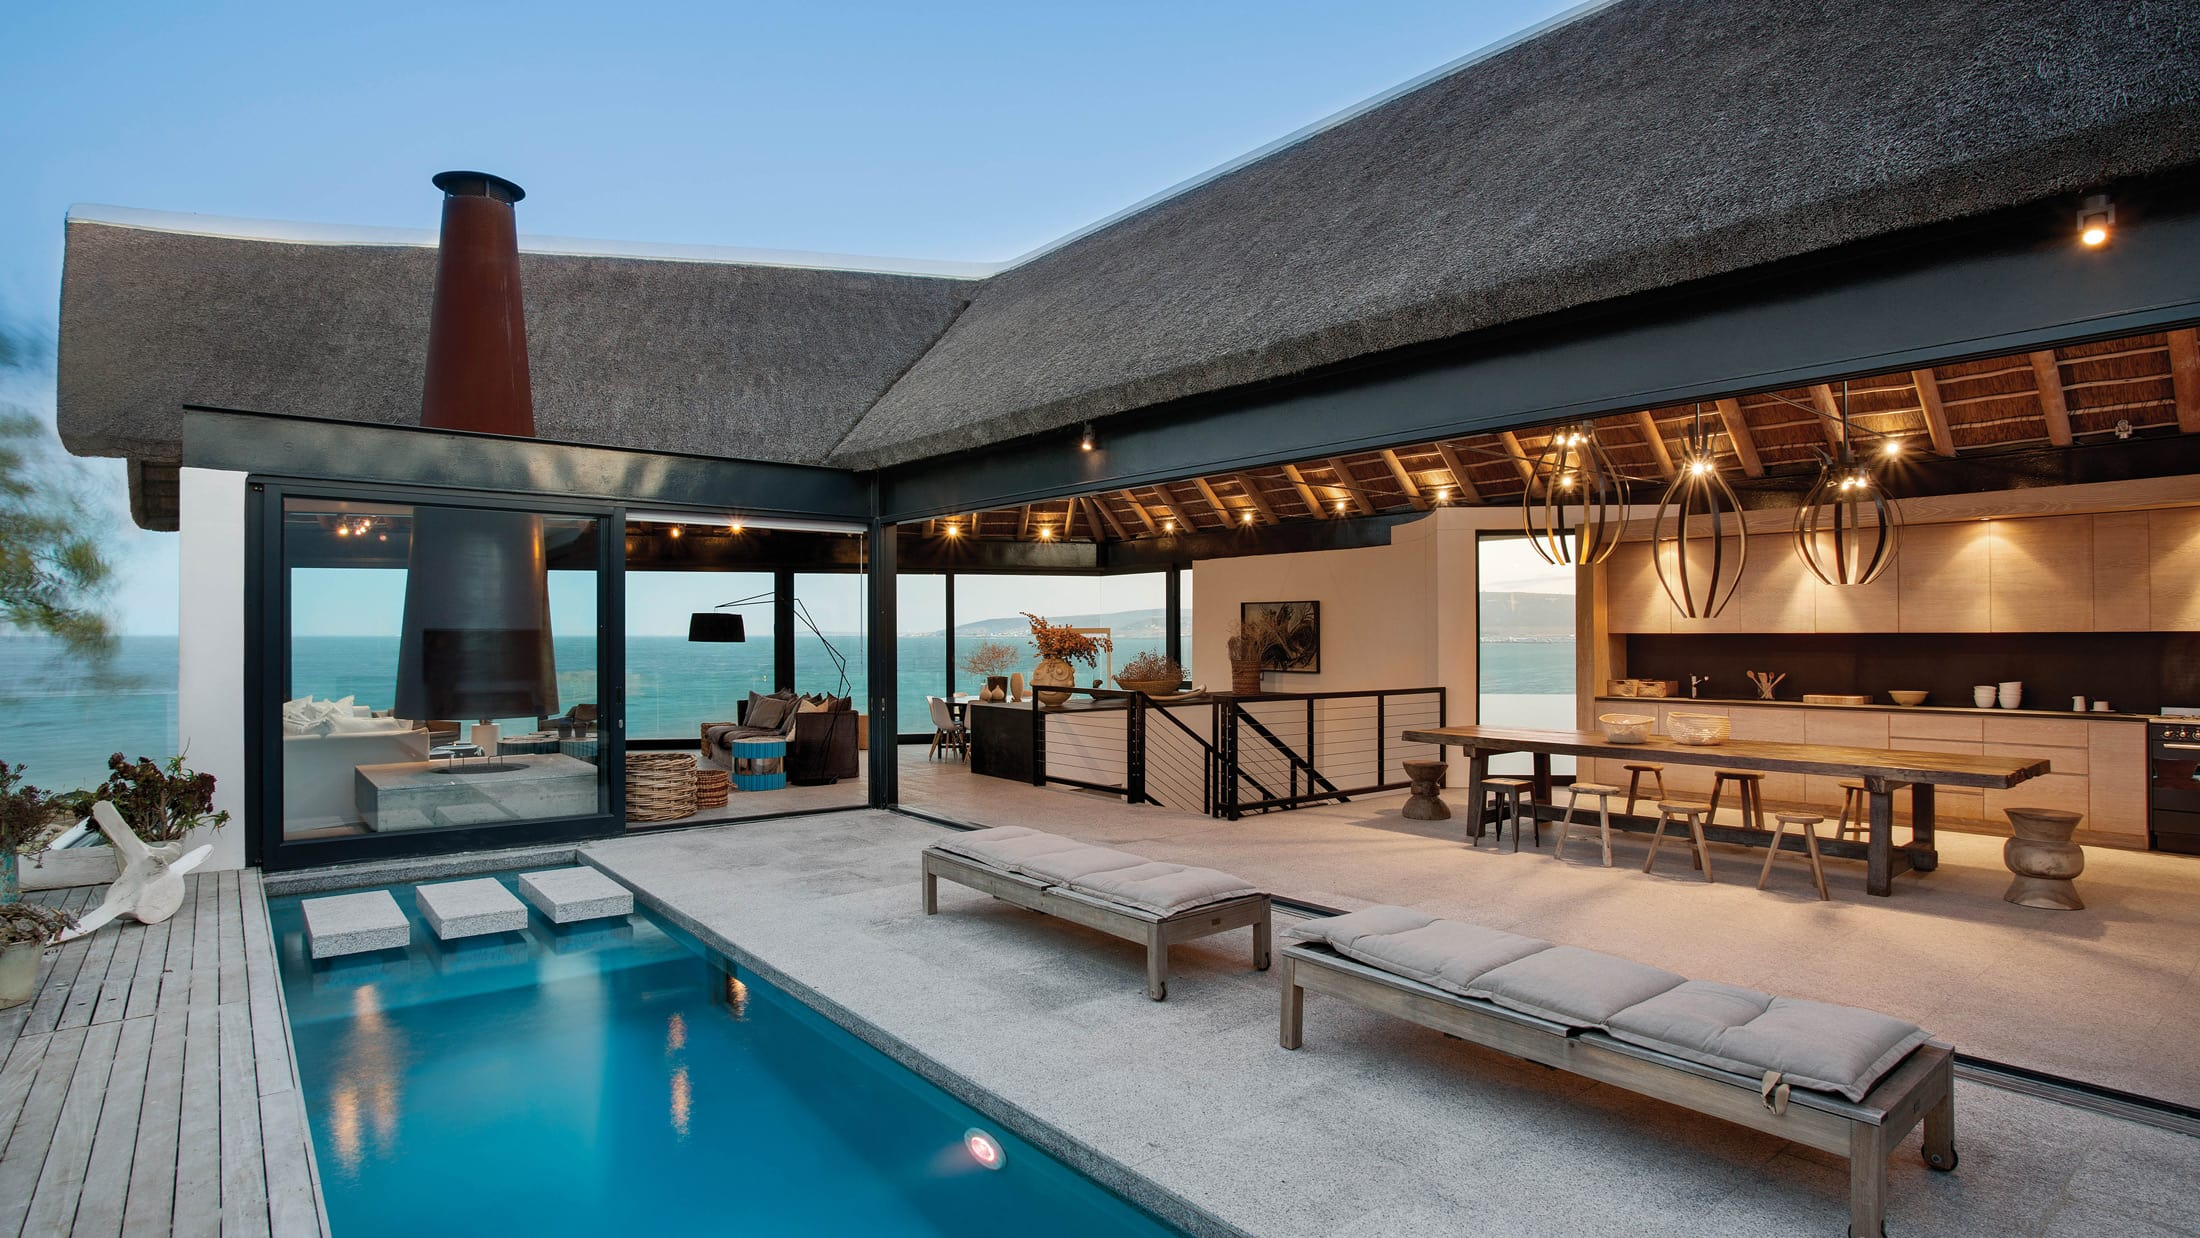 Silver Bay Villa | Sophisticated beach holiday accommodation in Shelley Point South Africa